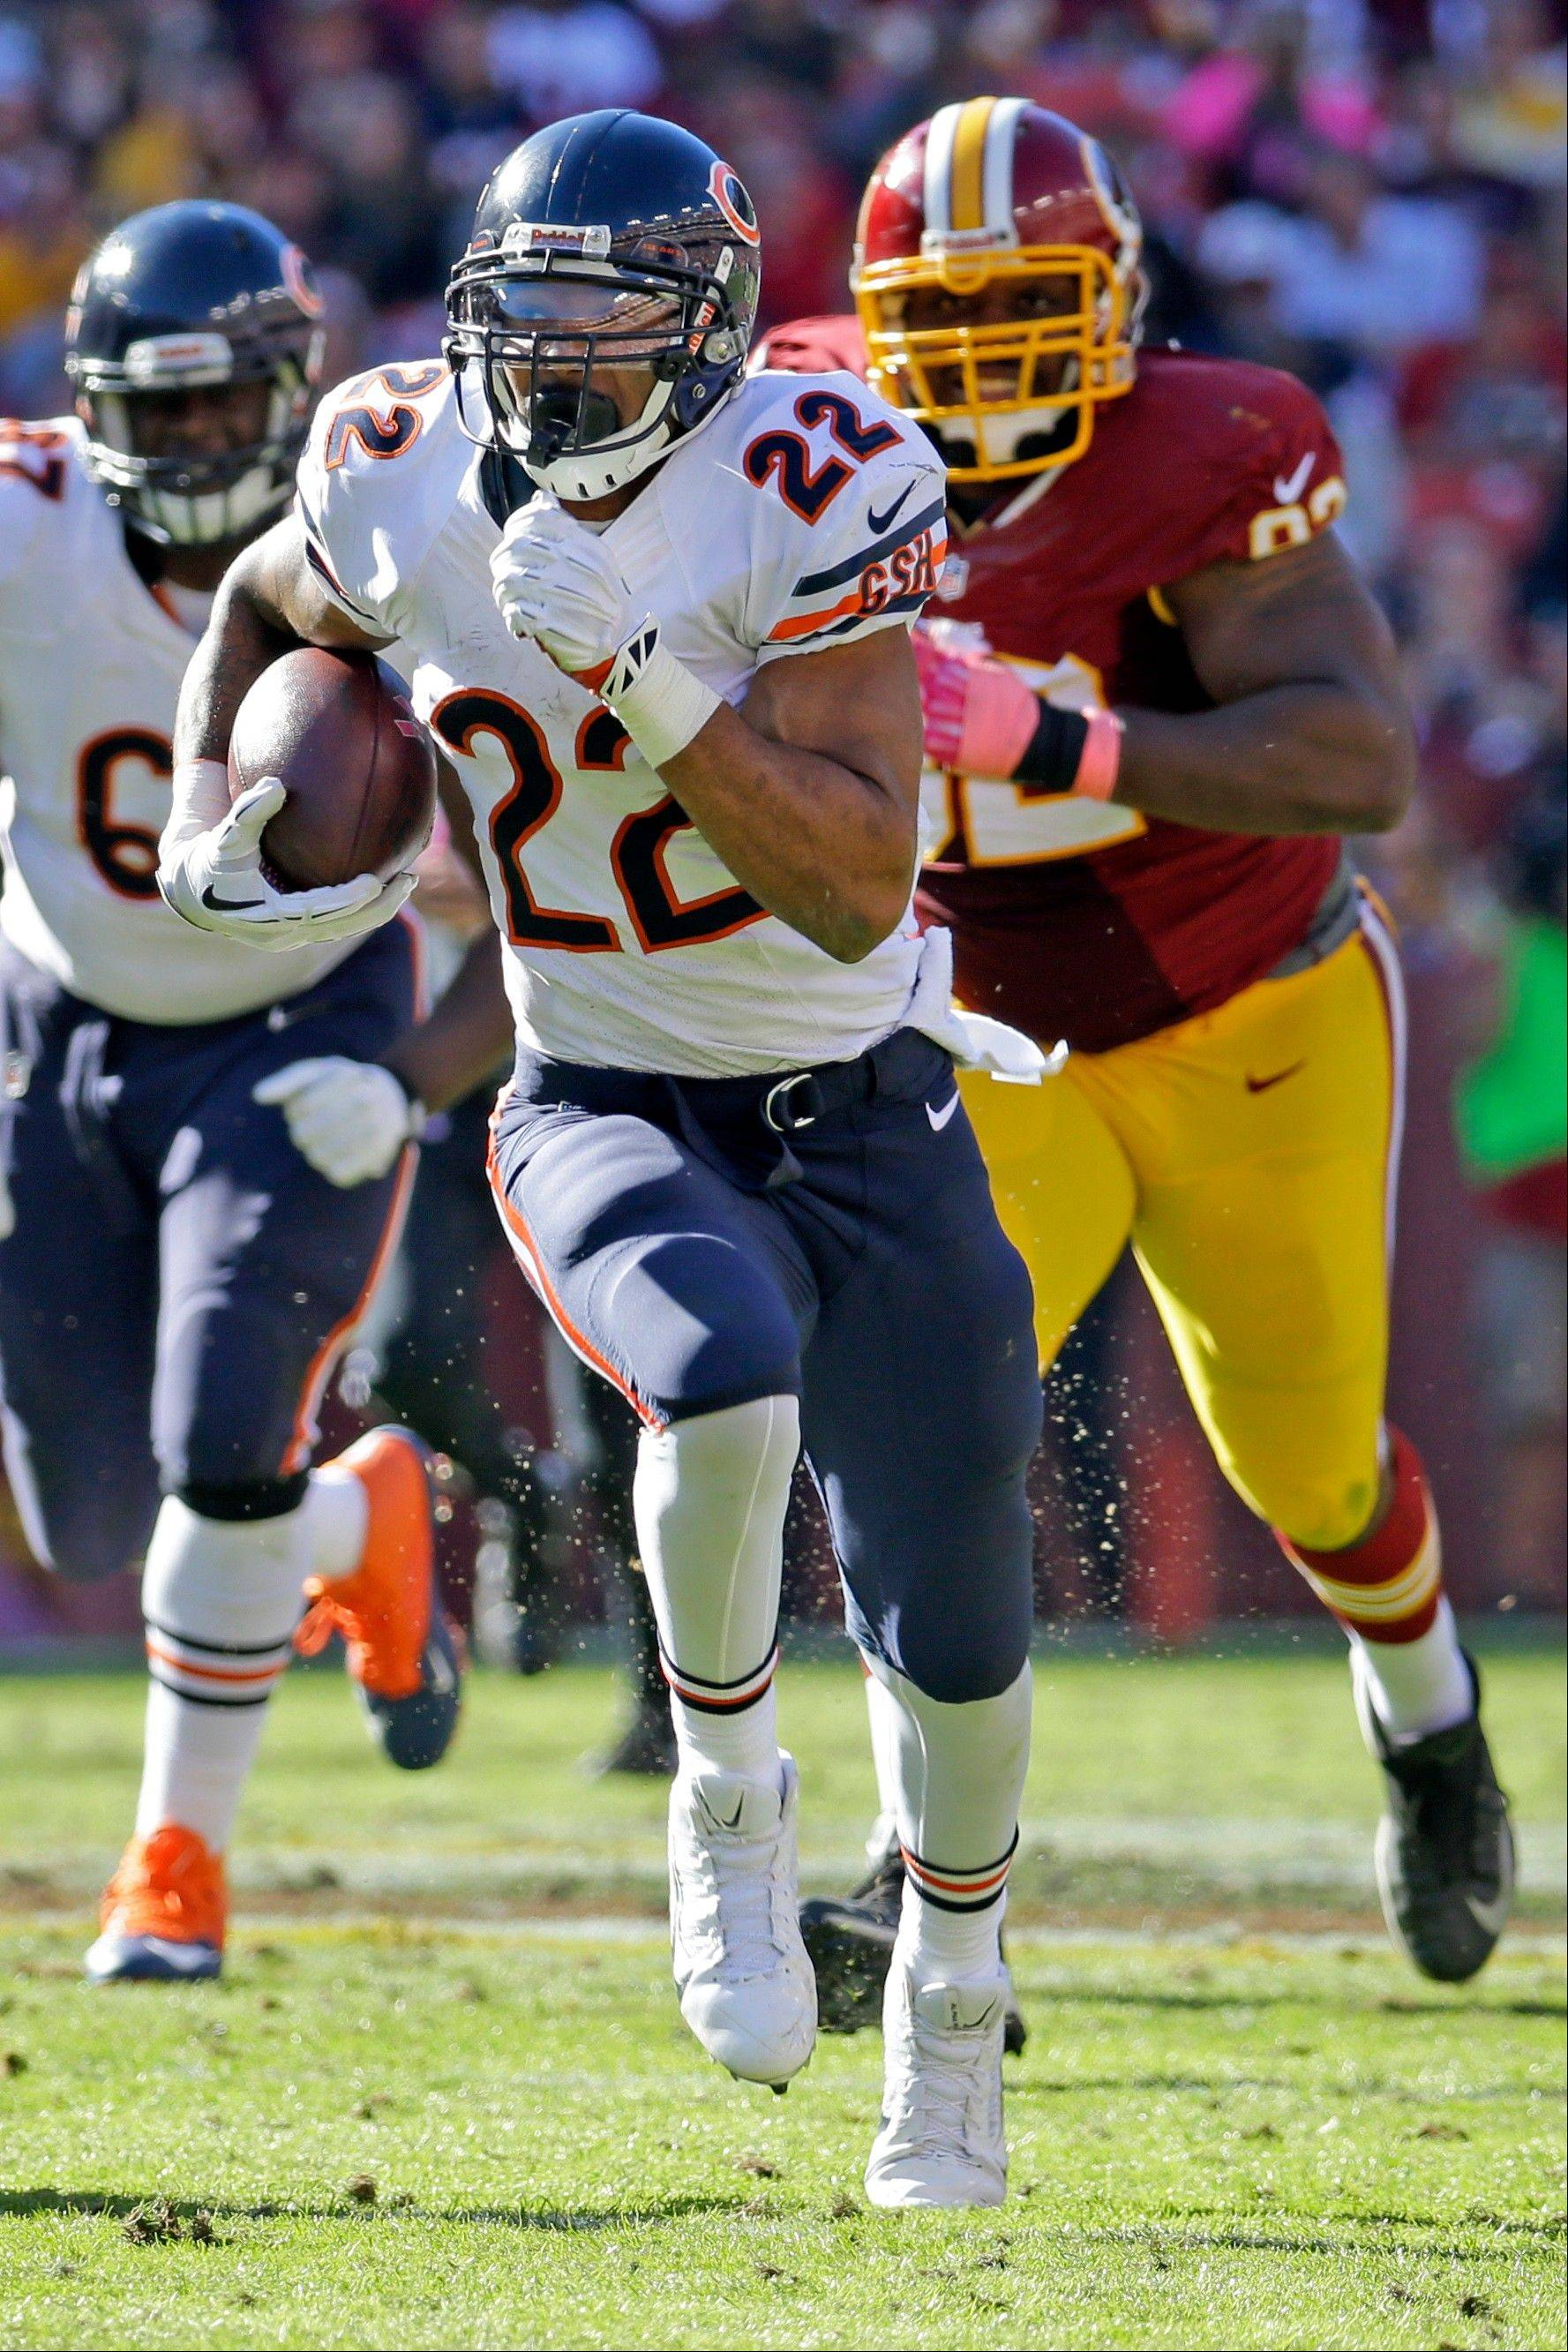 Bears running back Matt Forte takes off on a 50-yard touchdown run in Sunday's loss at Washington. Forte has been thriving so far in coach Marc Trestman's offense.